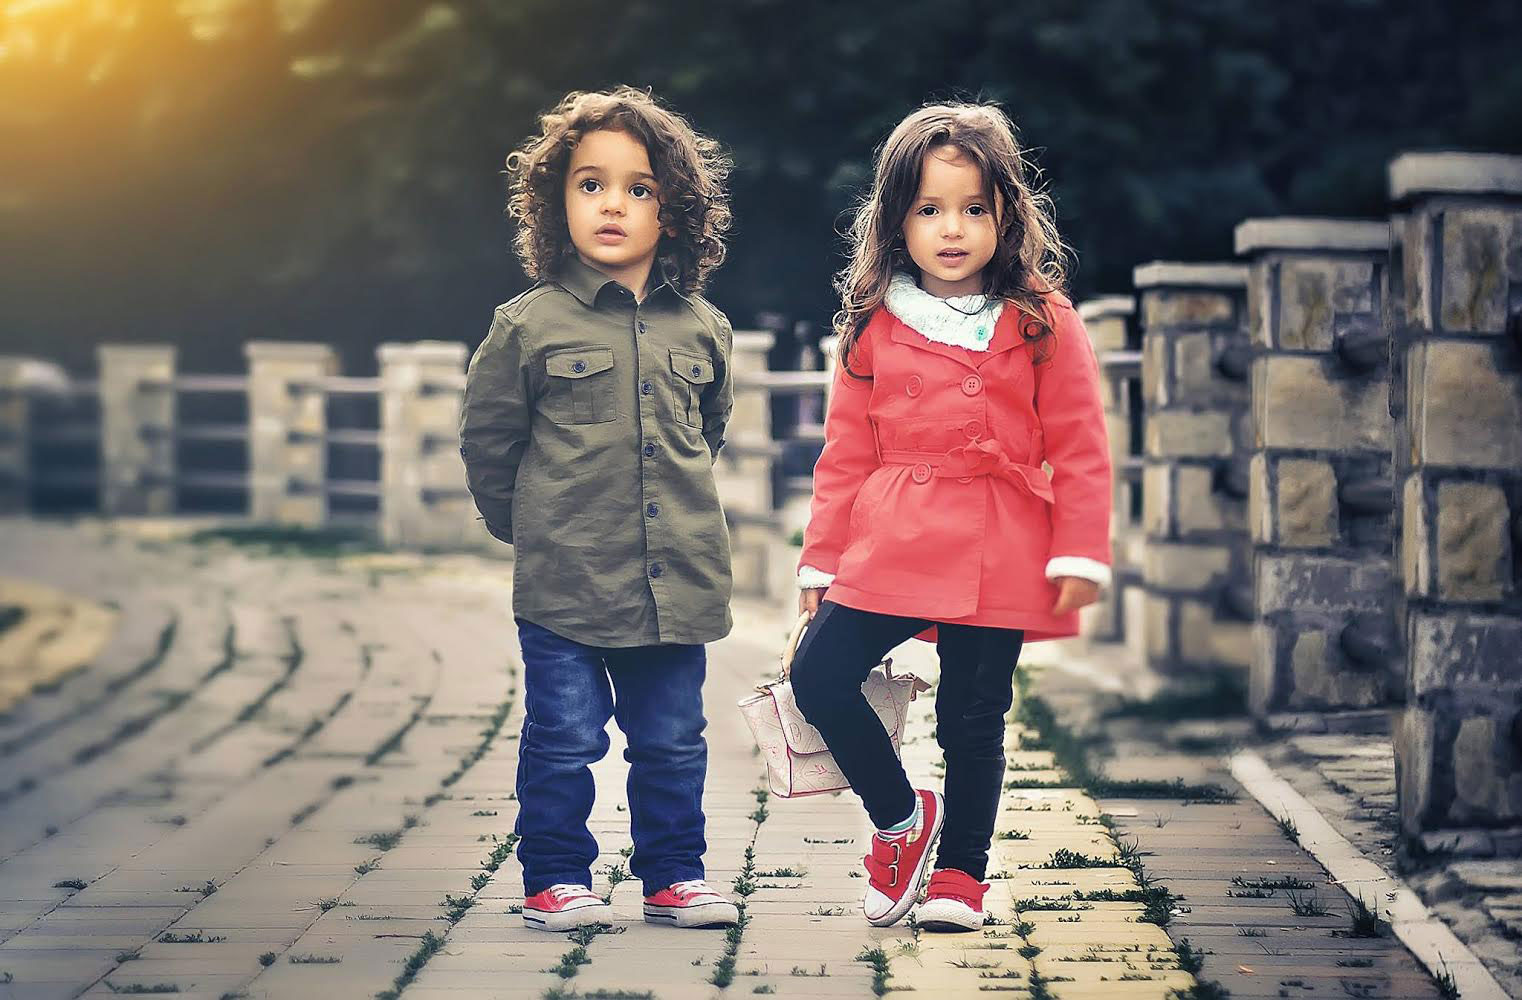 Child Modeling Agencies Tampa fl | Stellar Talent and Image